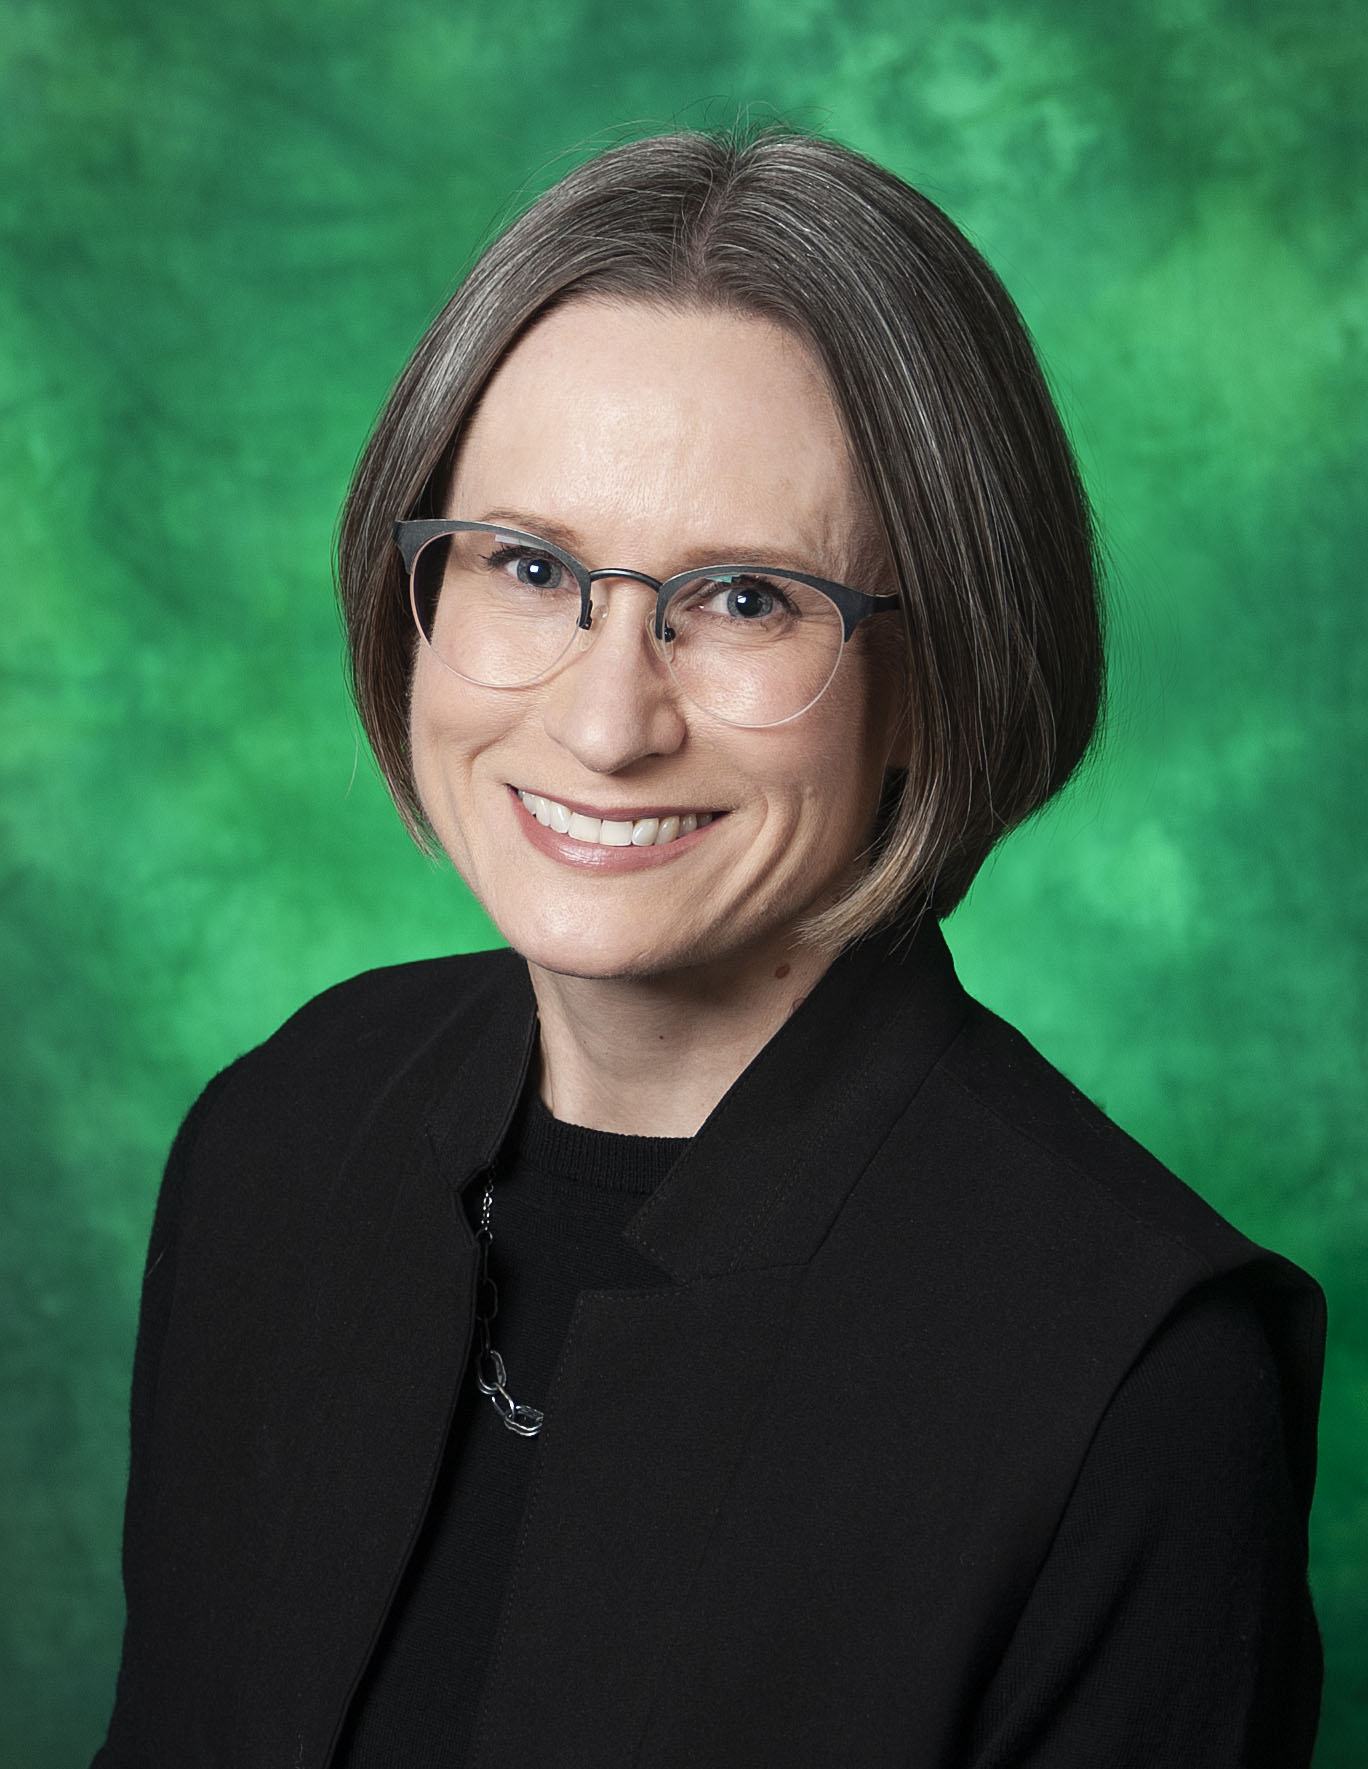 Retail veteran Kristen Kendrick Bigley named new director of The CoLaboratory at UNT on the Square